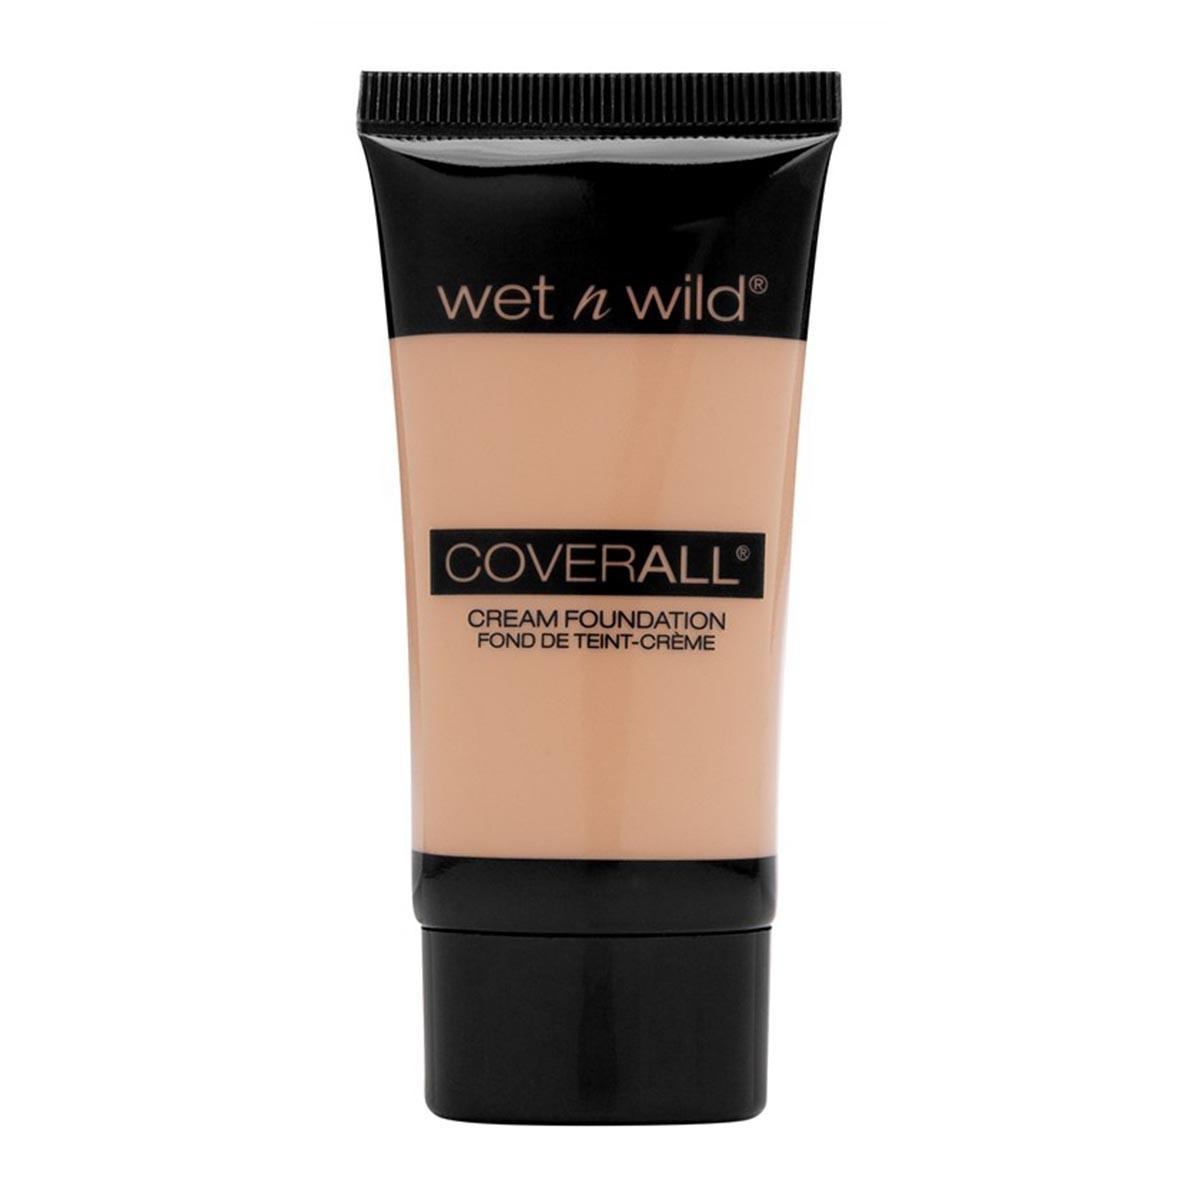 Wet n wild Coverall Cream Foundation Light